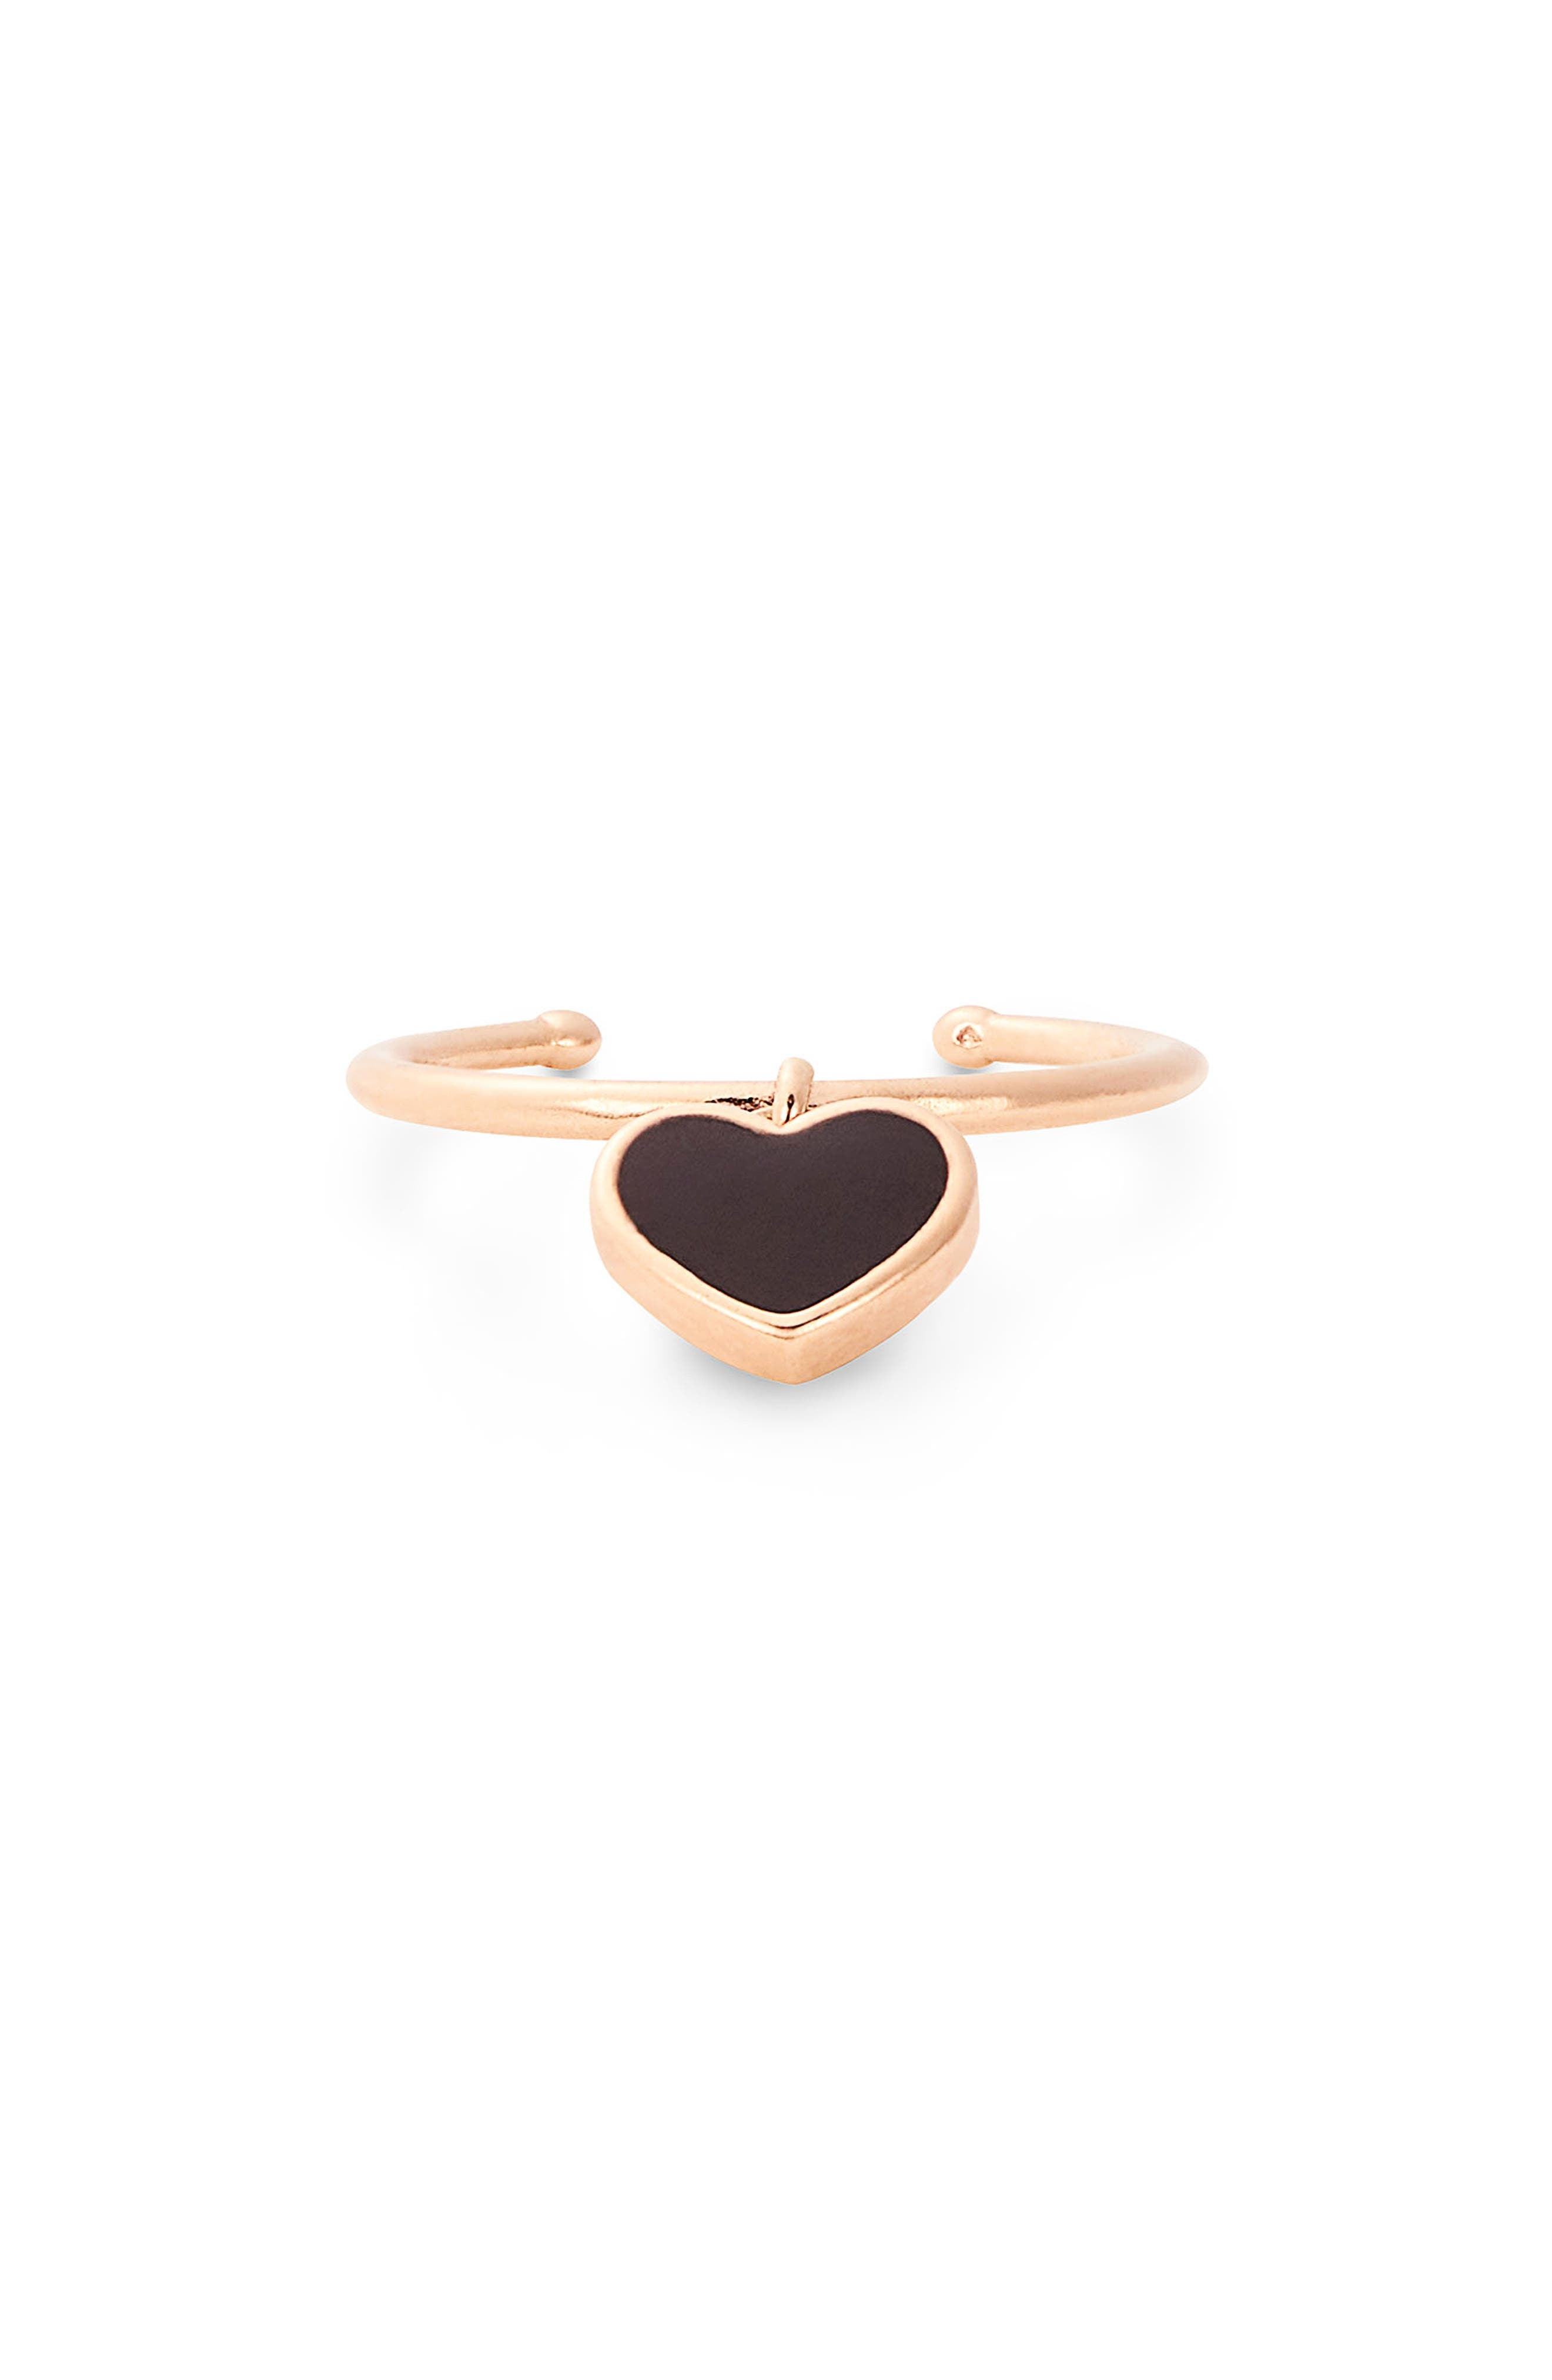 Image of Alex and Ani Love 14K Rose Gold Plated Heart Charm Ring